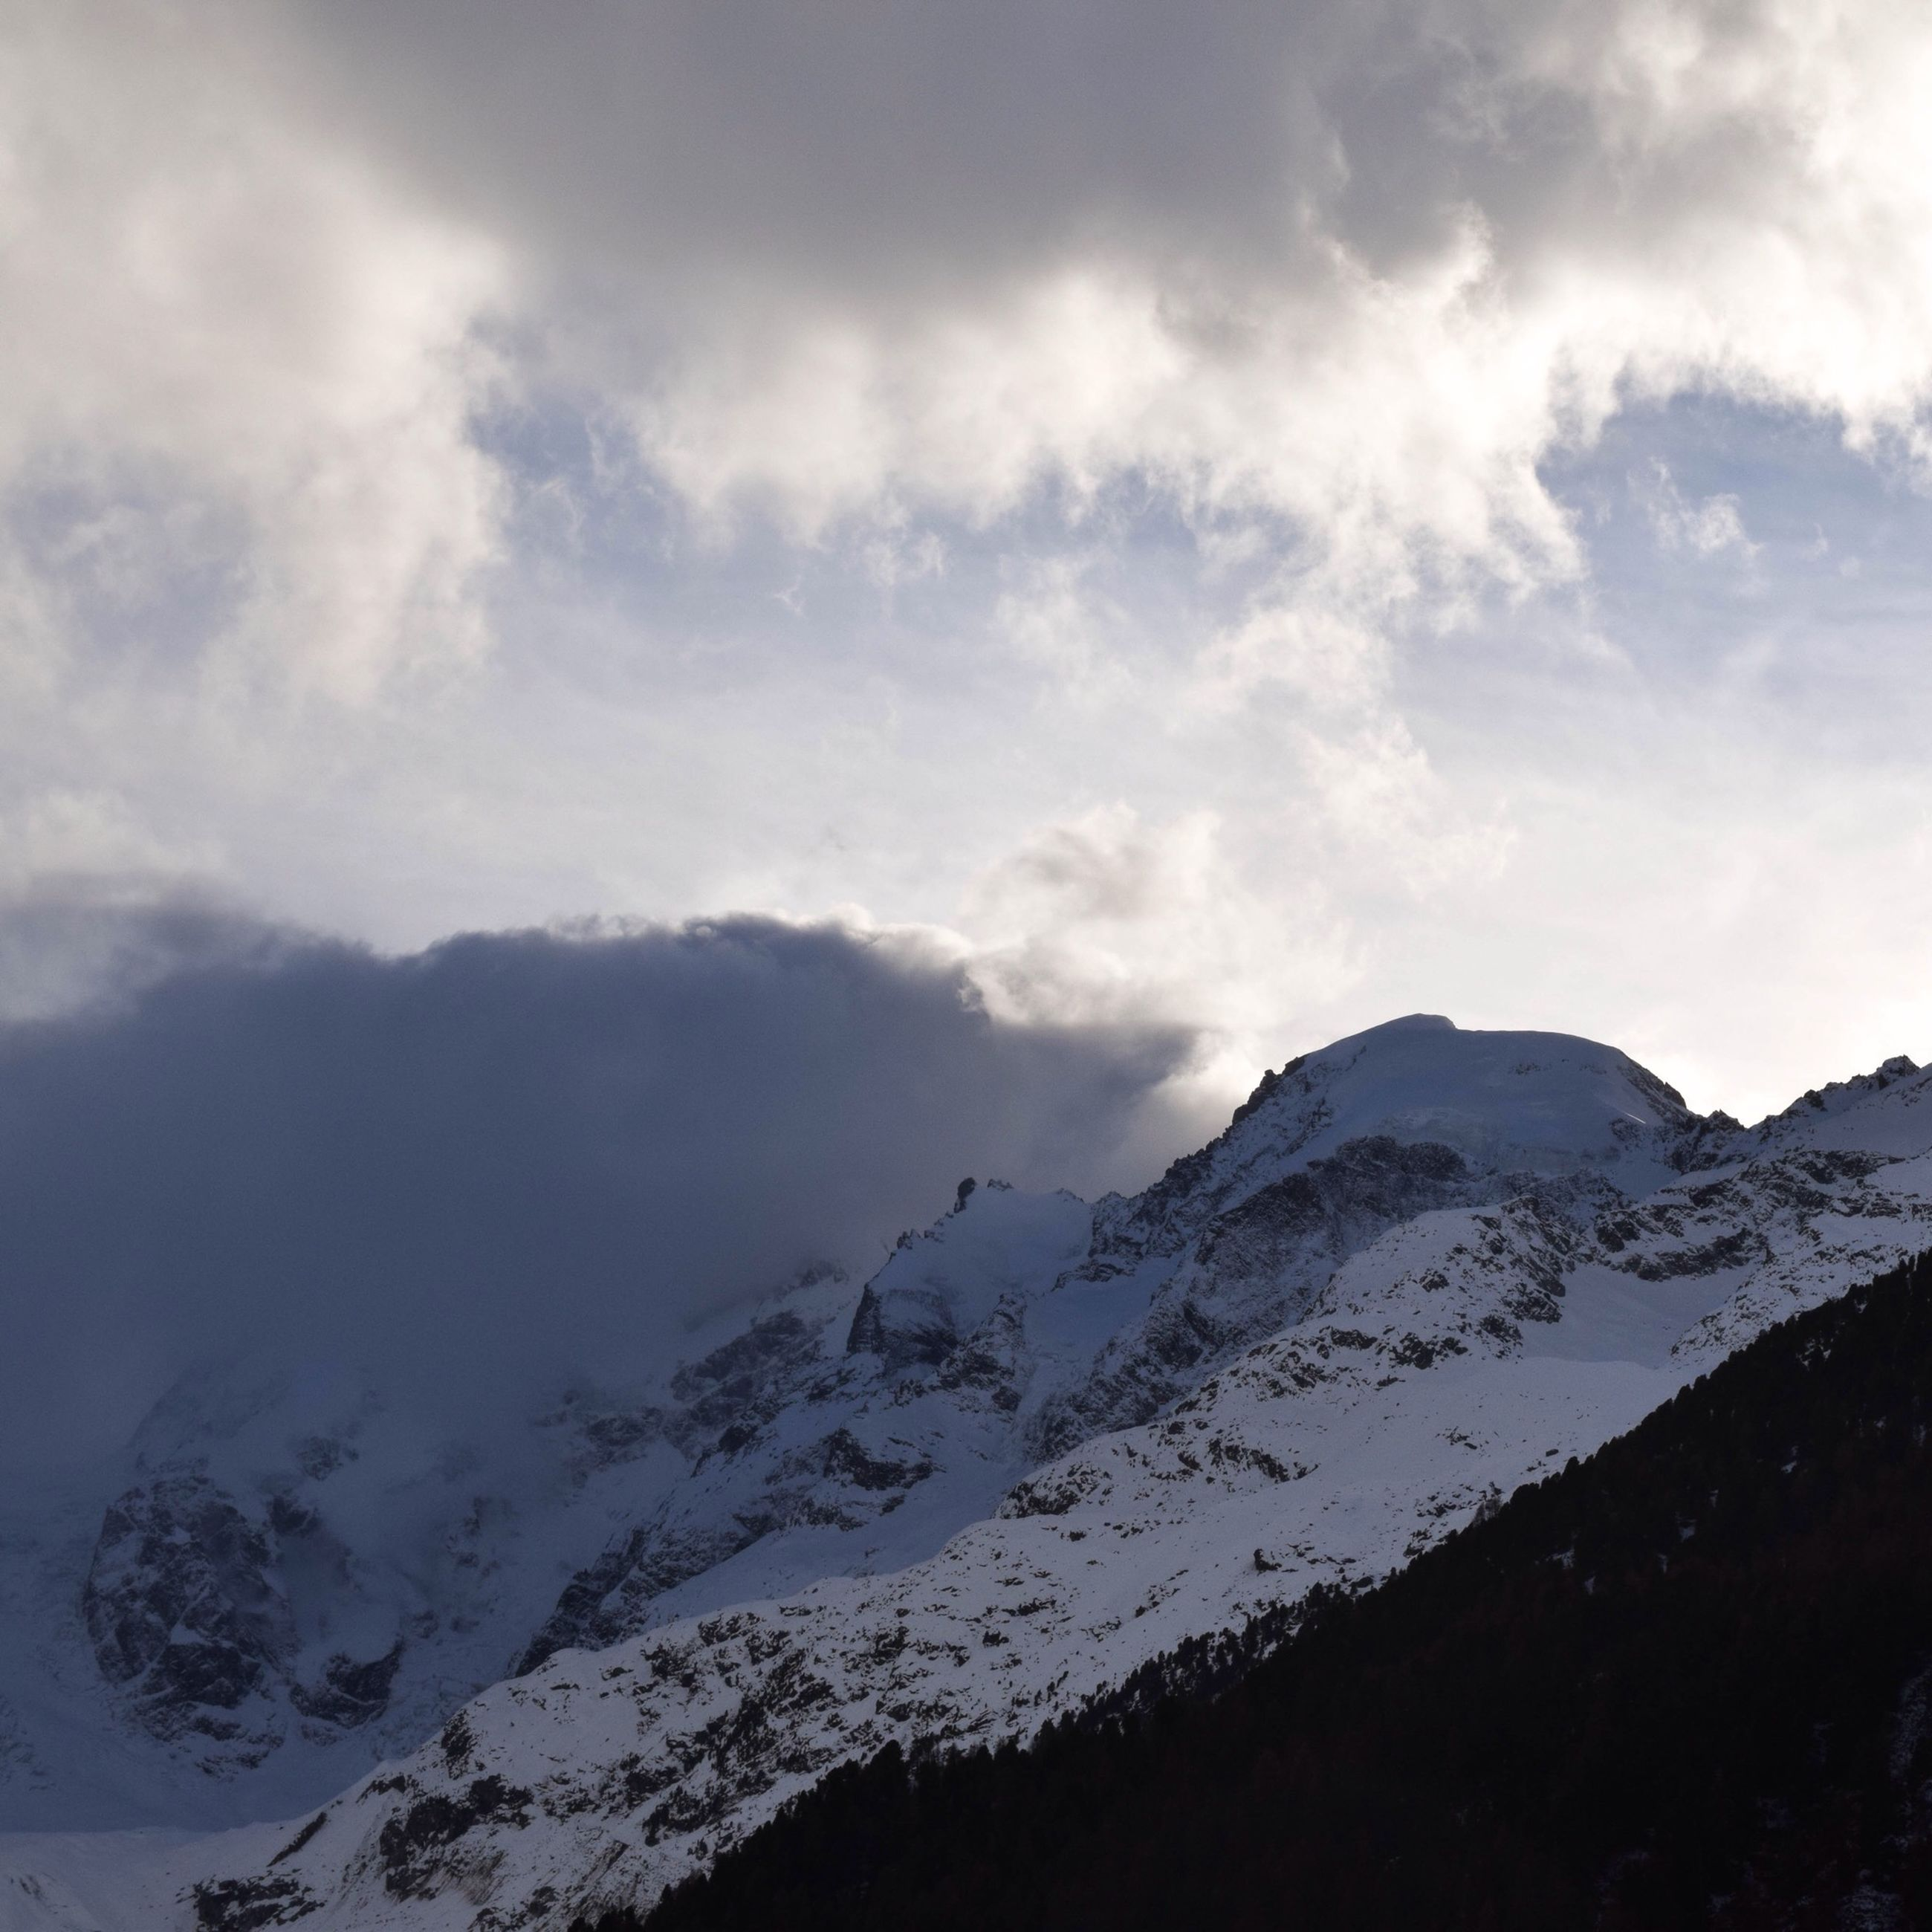 mountain, tranquil scene, mountain range, scenics, tranquility, beauty in nature, sky, snow, cloud - sky, nature, landscape, winter, cold temperature, weather, non-urban scene, idyllic, snowcapped mountain, cloudy, cloud, day